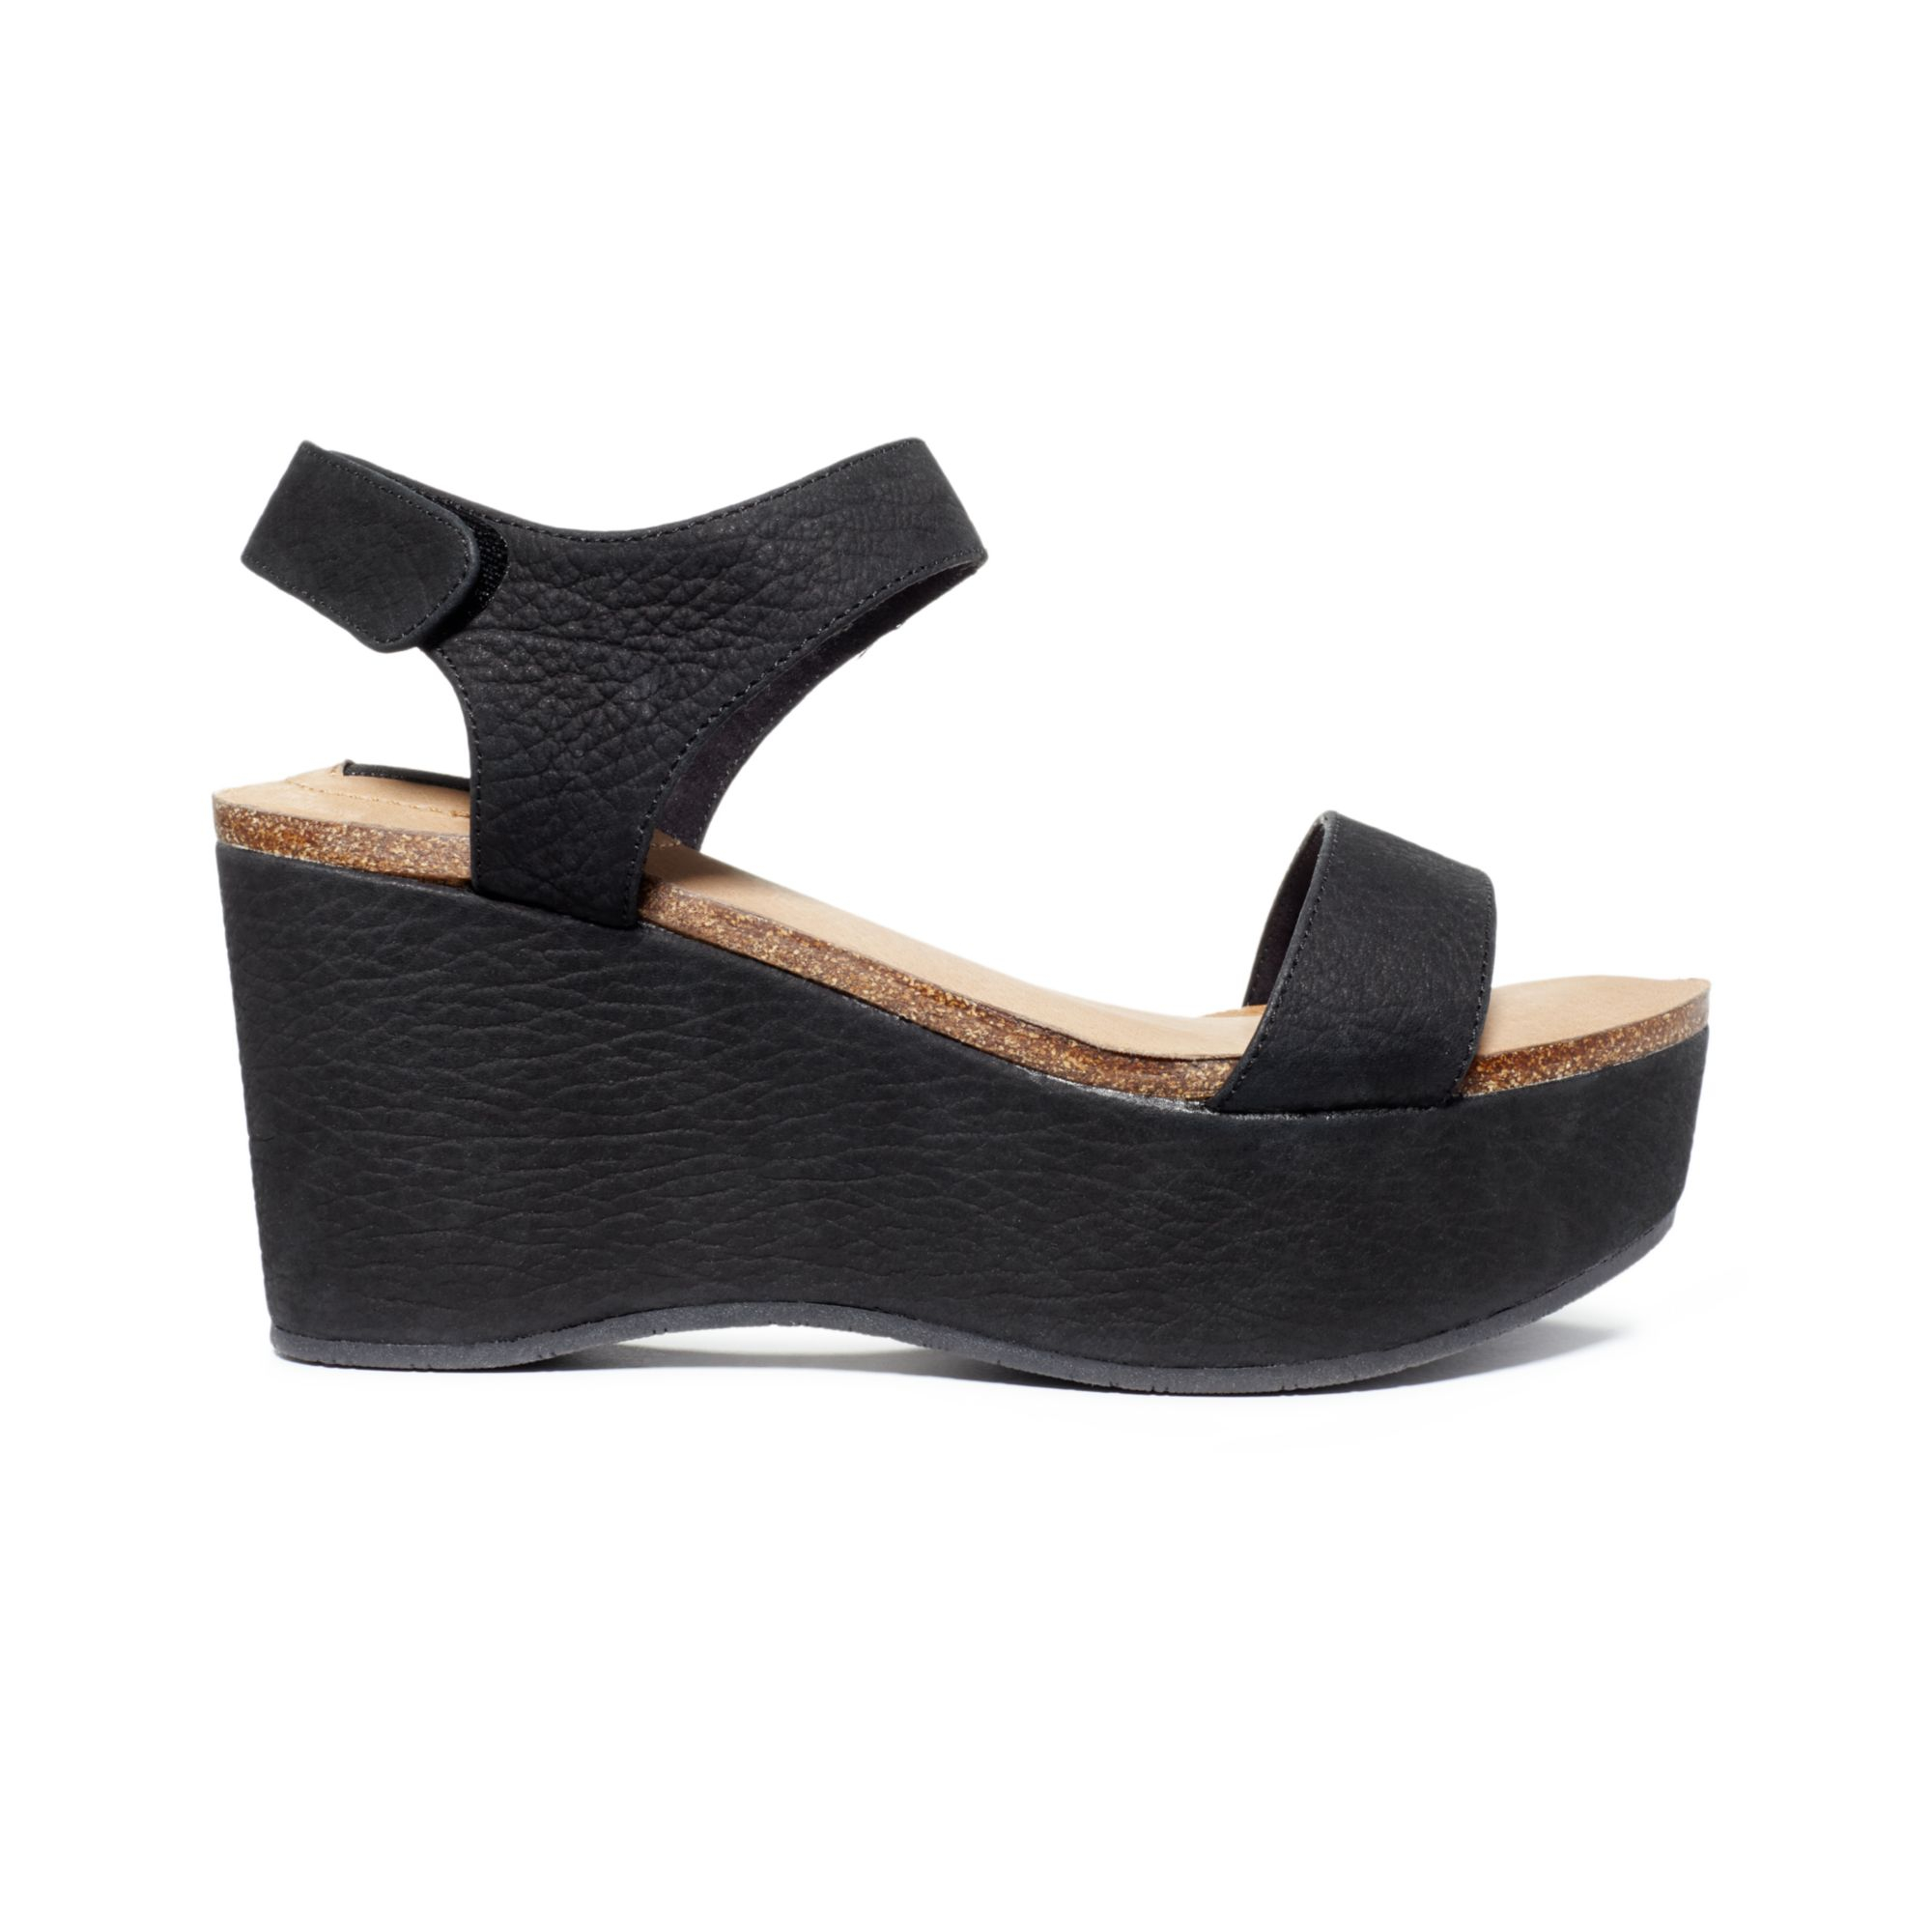 4a9f6c10bee Black Platform Wedge Sandals